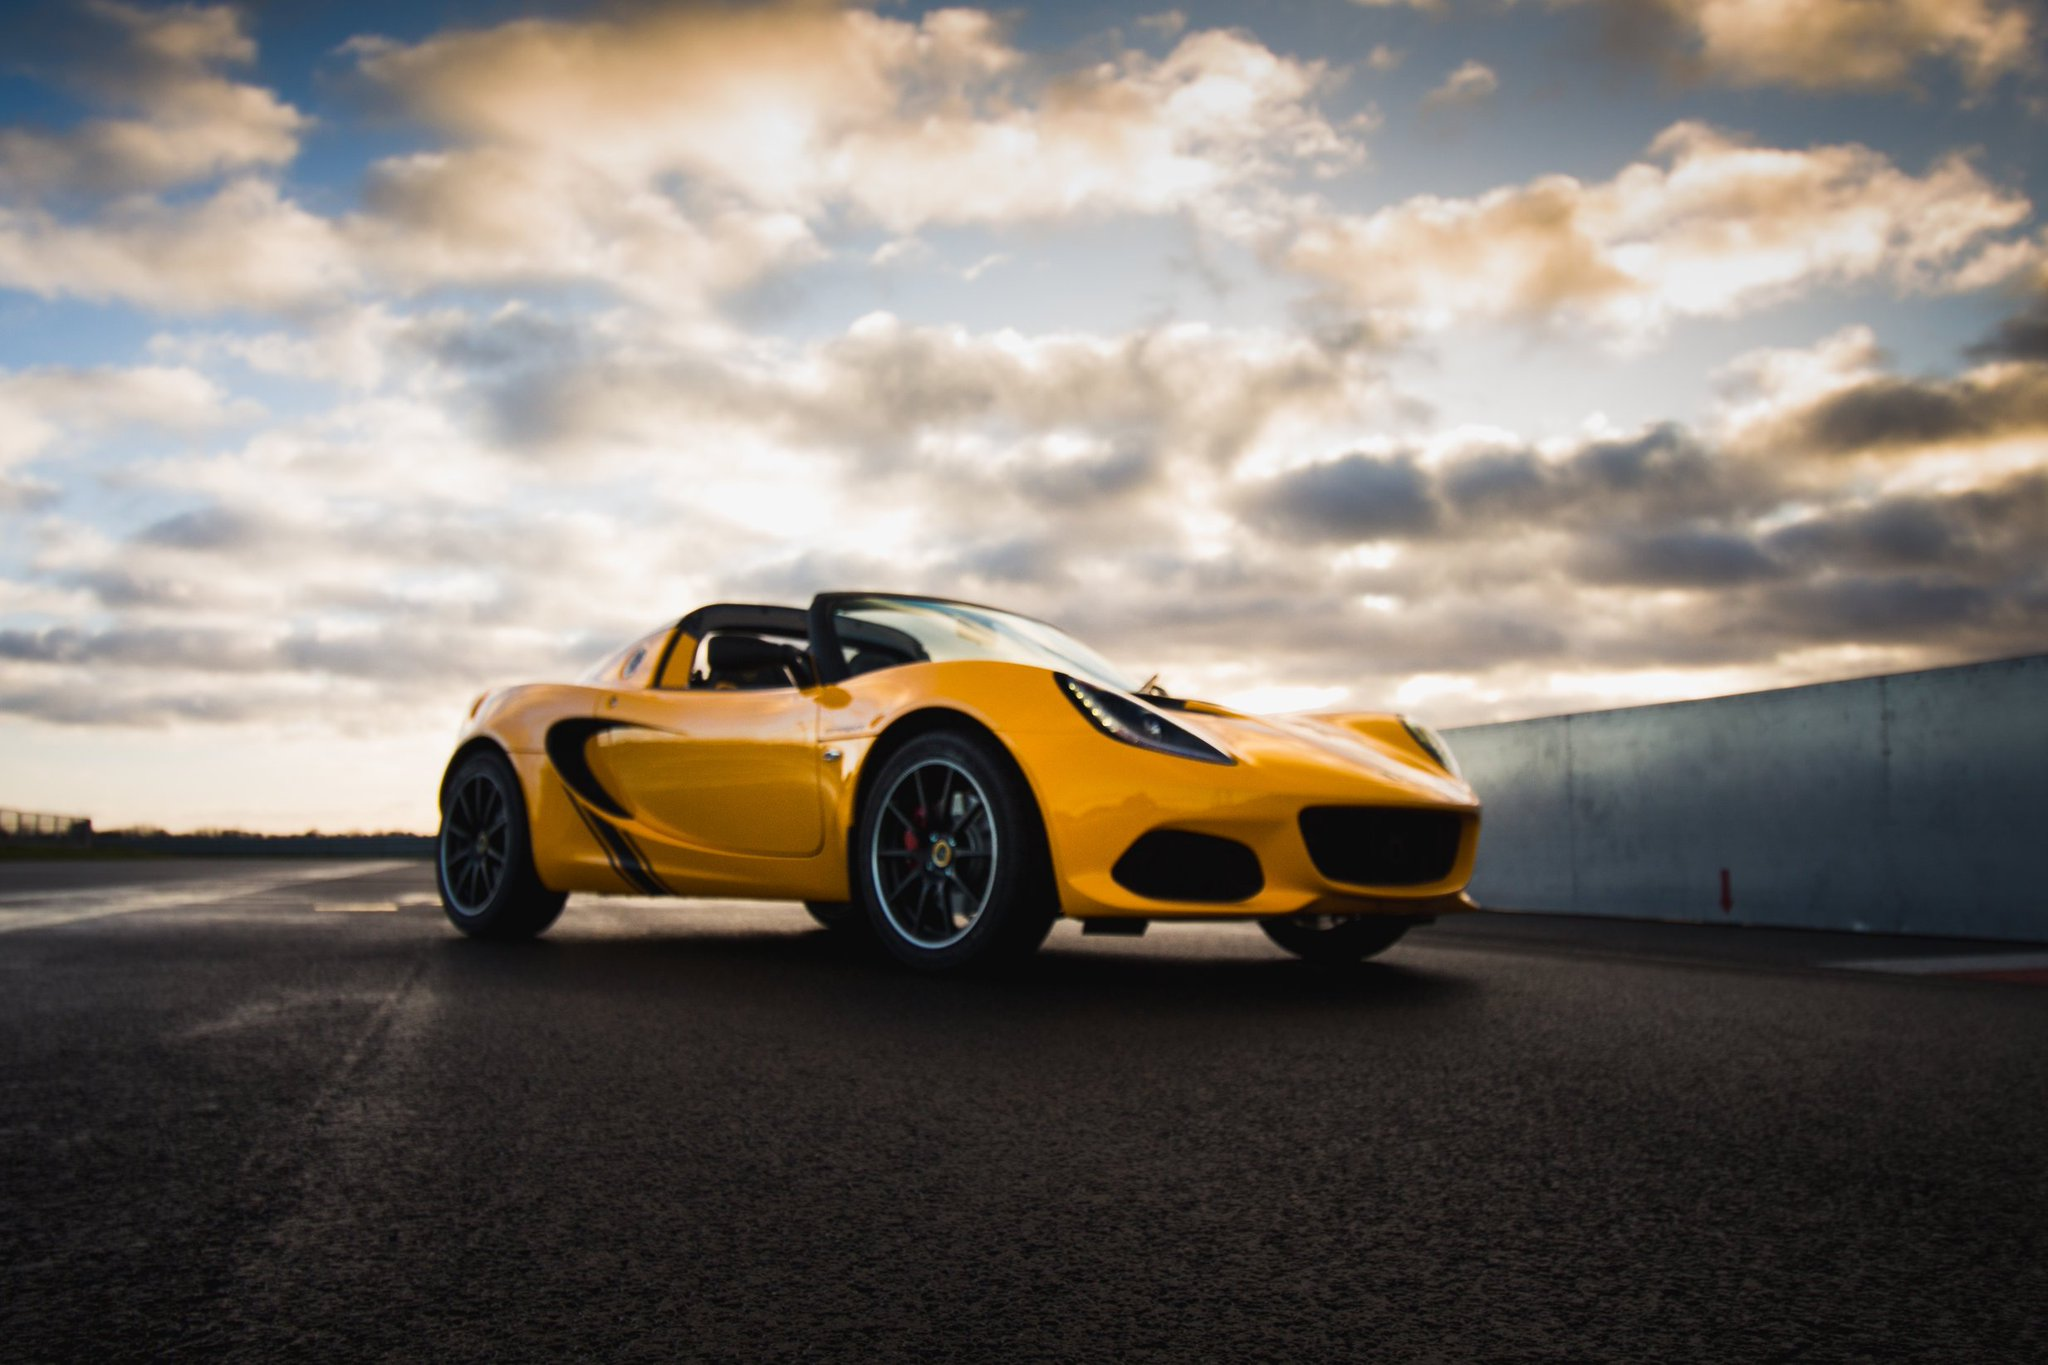 Light is bright. The sun setting on our Hethel test track with the #Elise #Sprint220 #lightisright #Lotus70 https://t.co/FpiXsb74R0